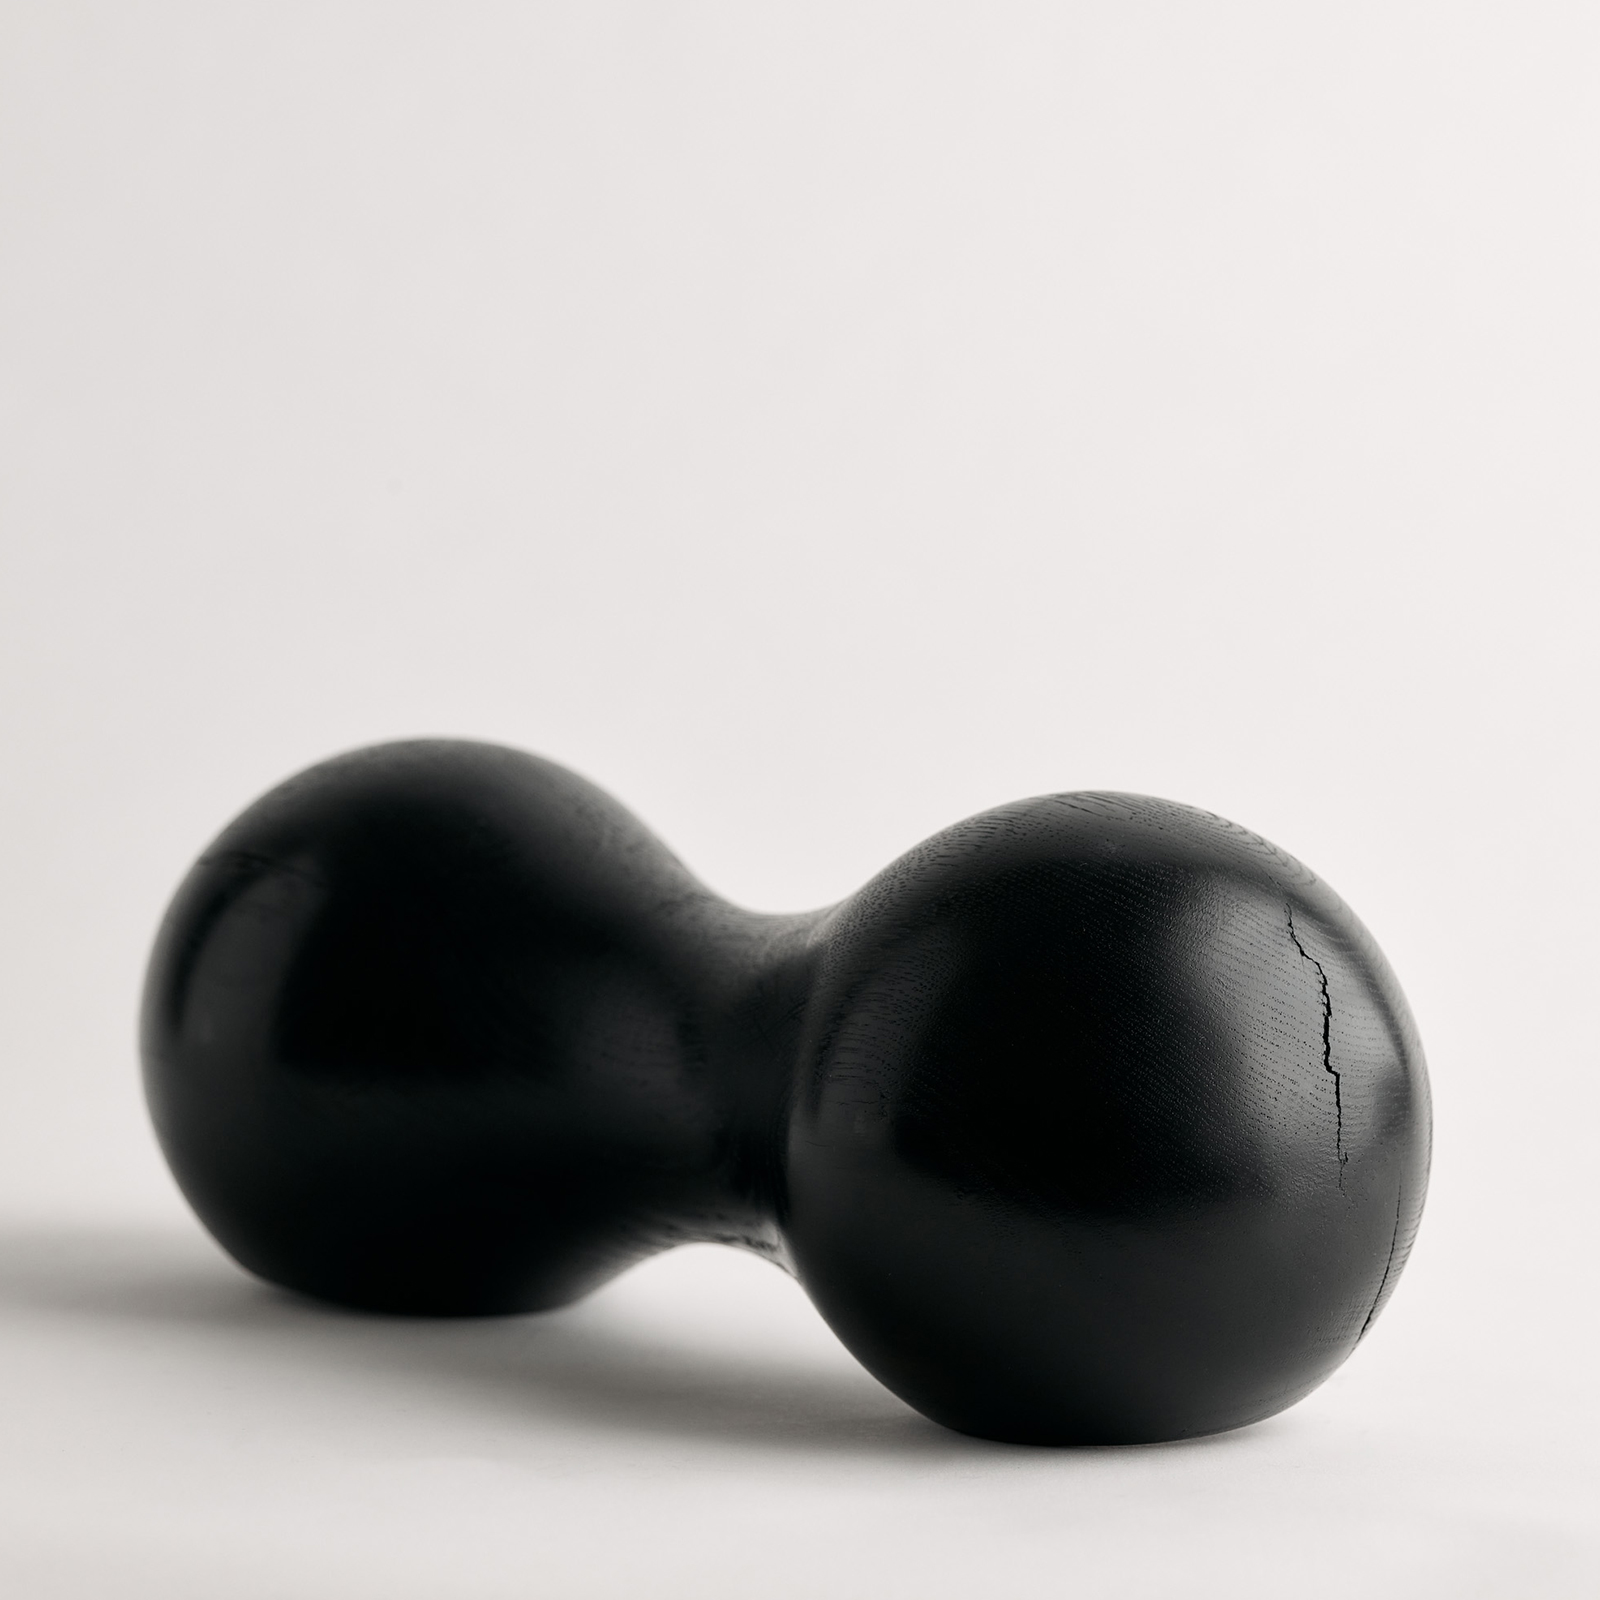 Black Bean Sculpture In Ebonized American Oak By Zachary Frankel 3